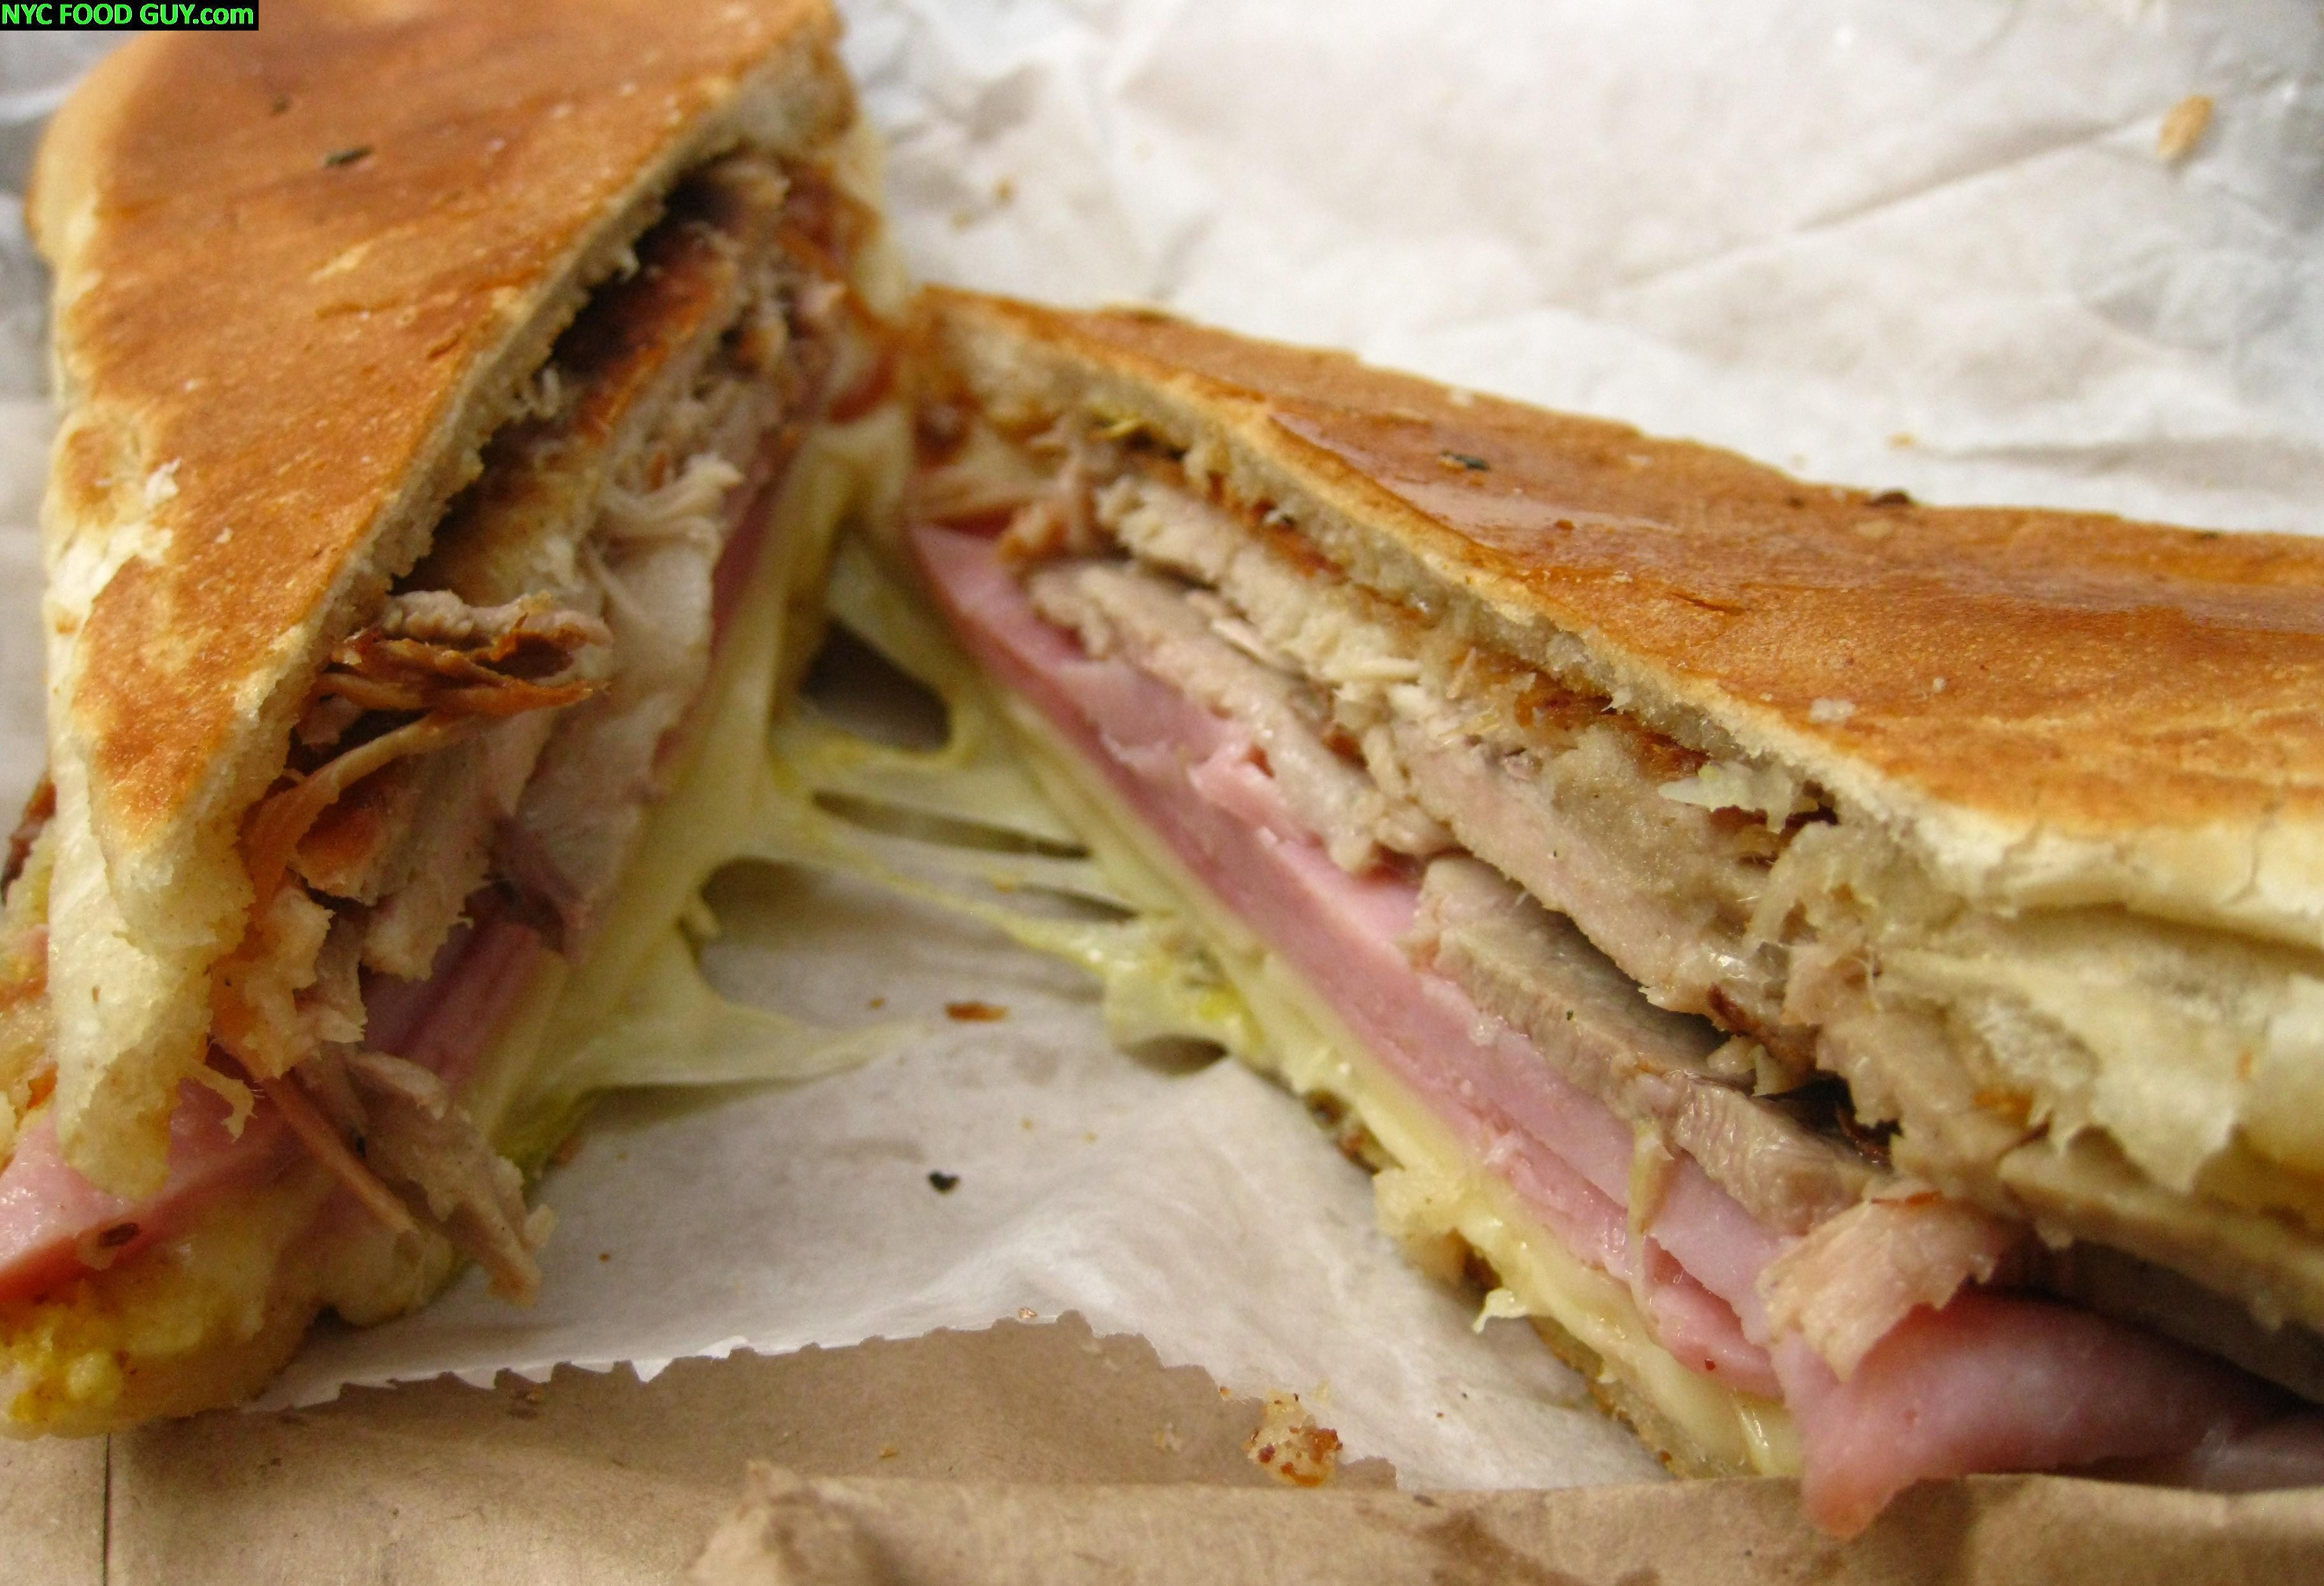 El Sitio Cuban Sandwich ($4.35). From Top to Bottom: Pressed Garlic-Butterd hero, roast pork, sliced ham, melted Swiss, pickles, mustard